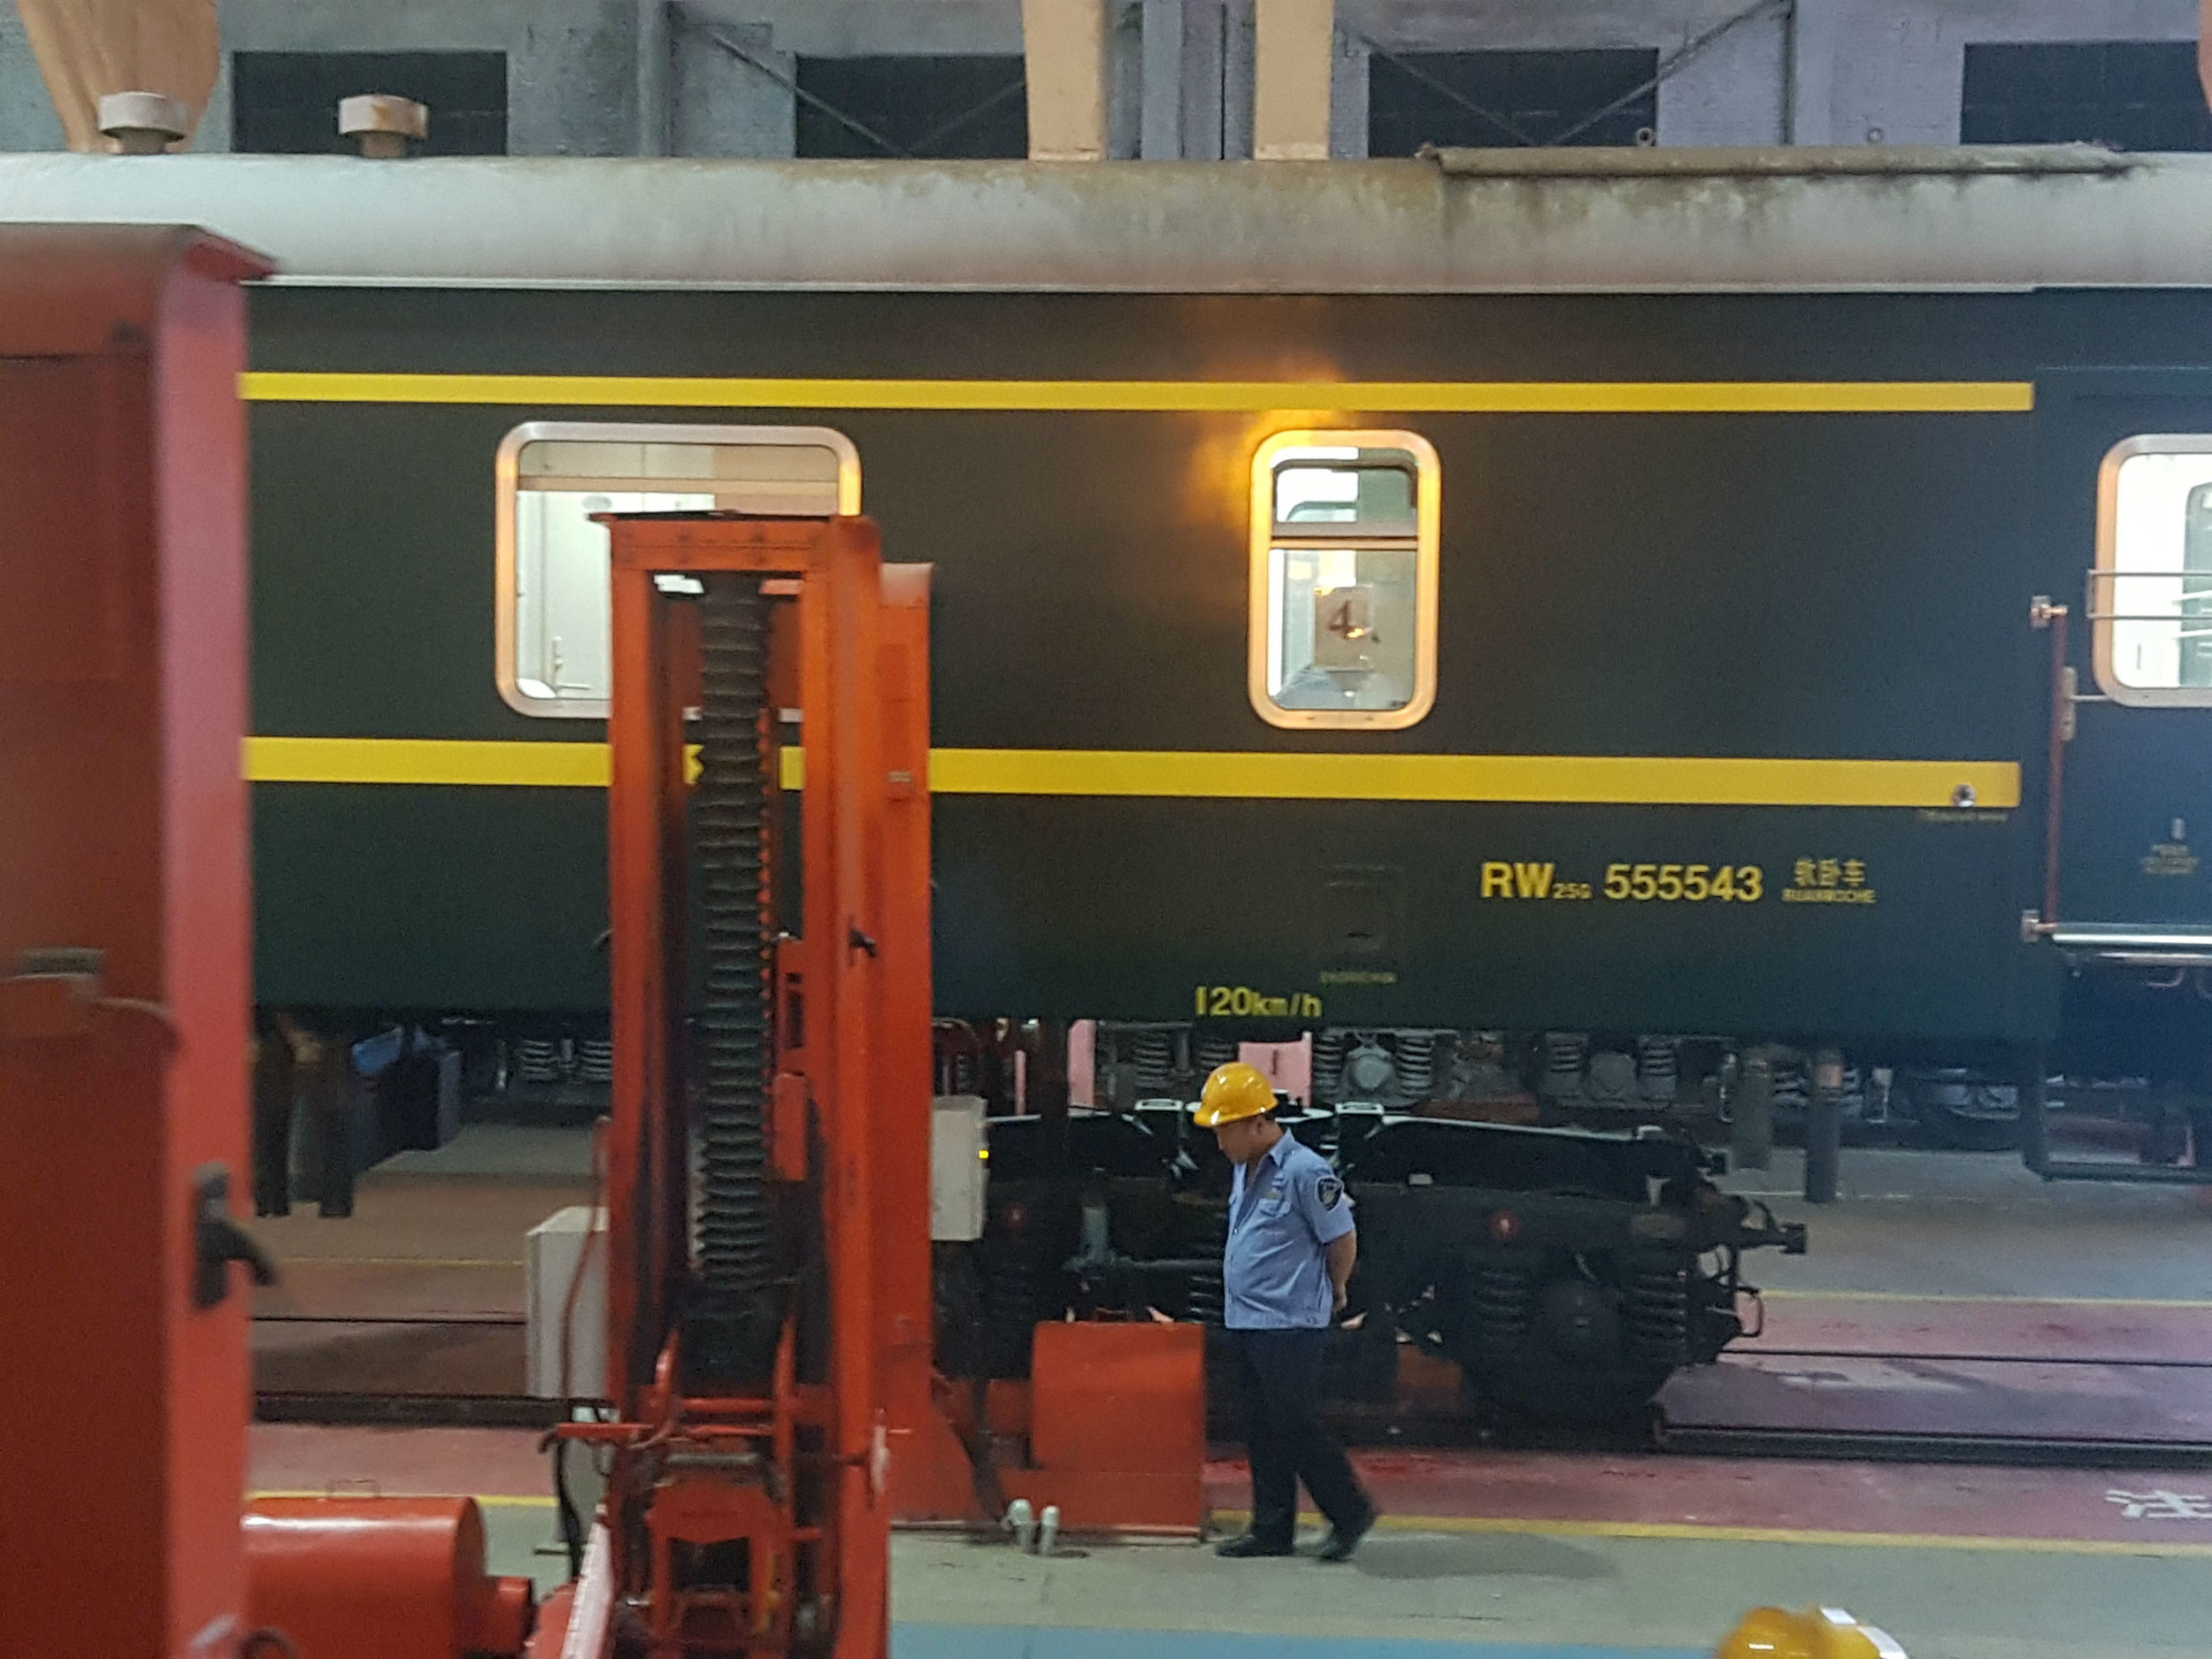 Lifting the train carriage to change its wheels at the Chinese - Mongolian border